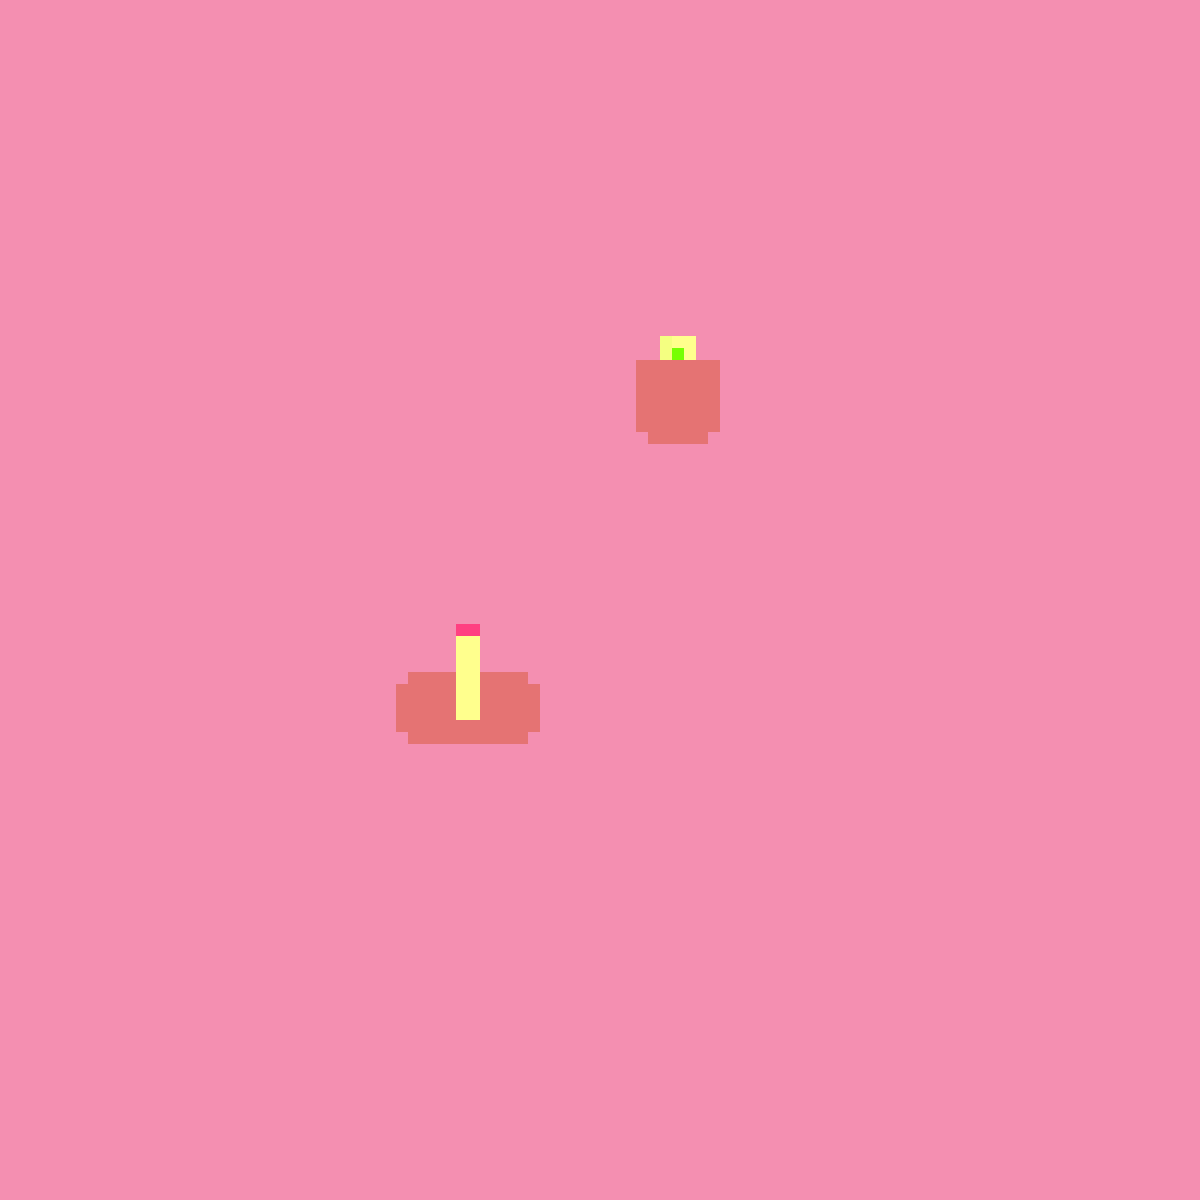 Candles by Uninevie